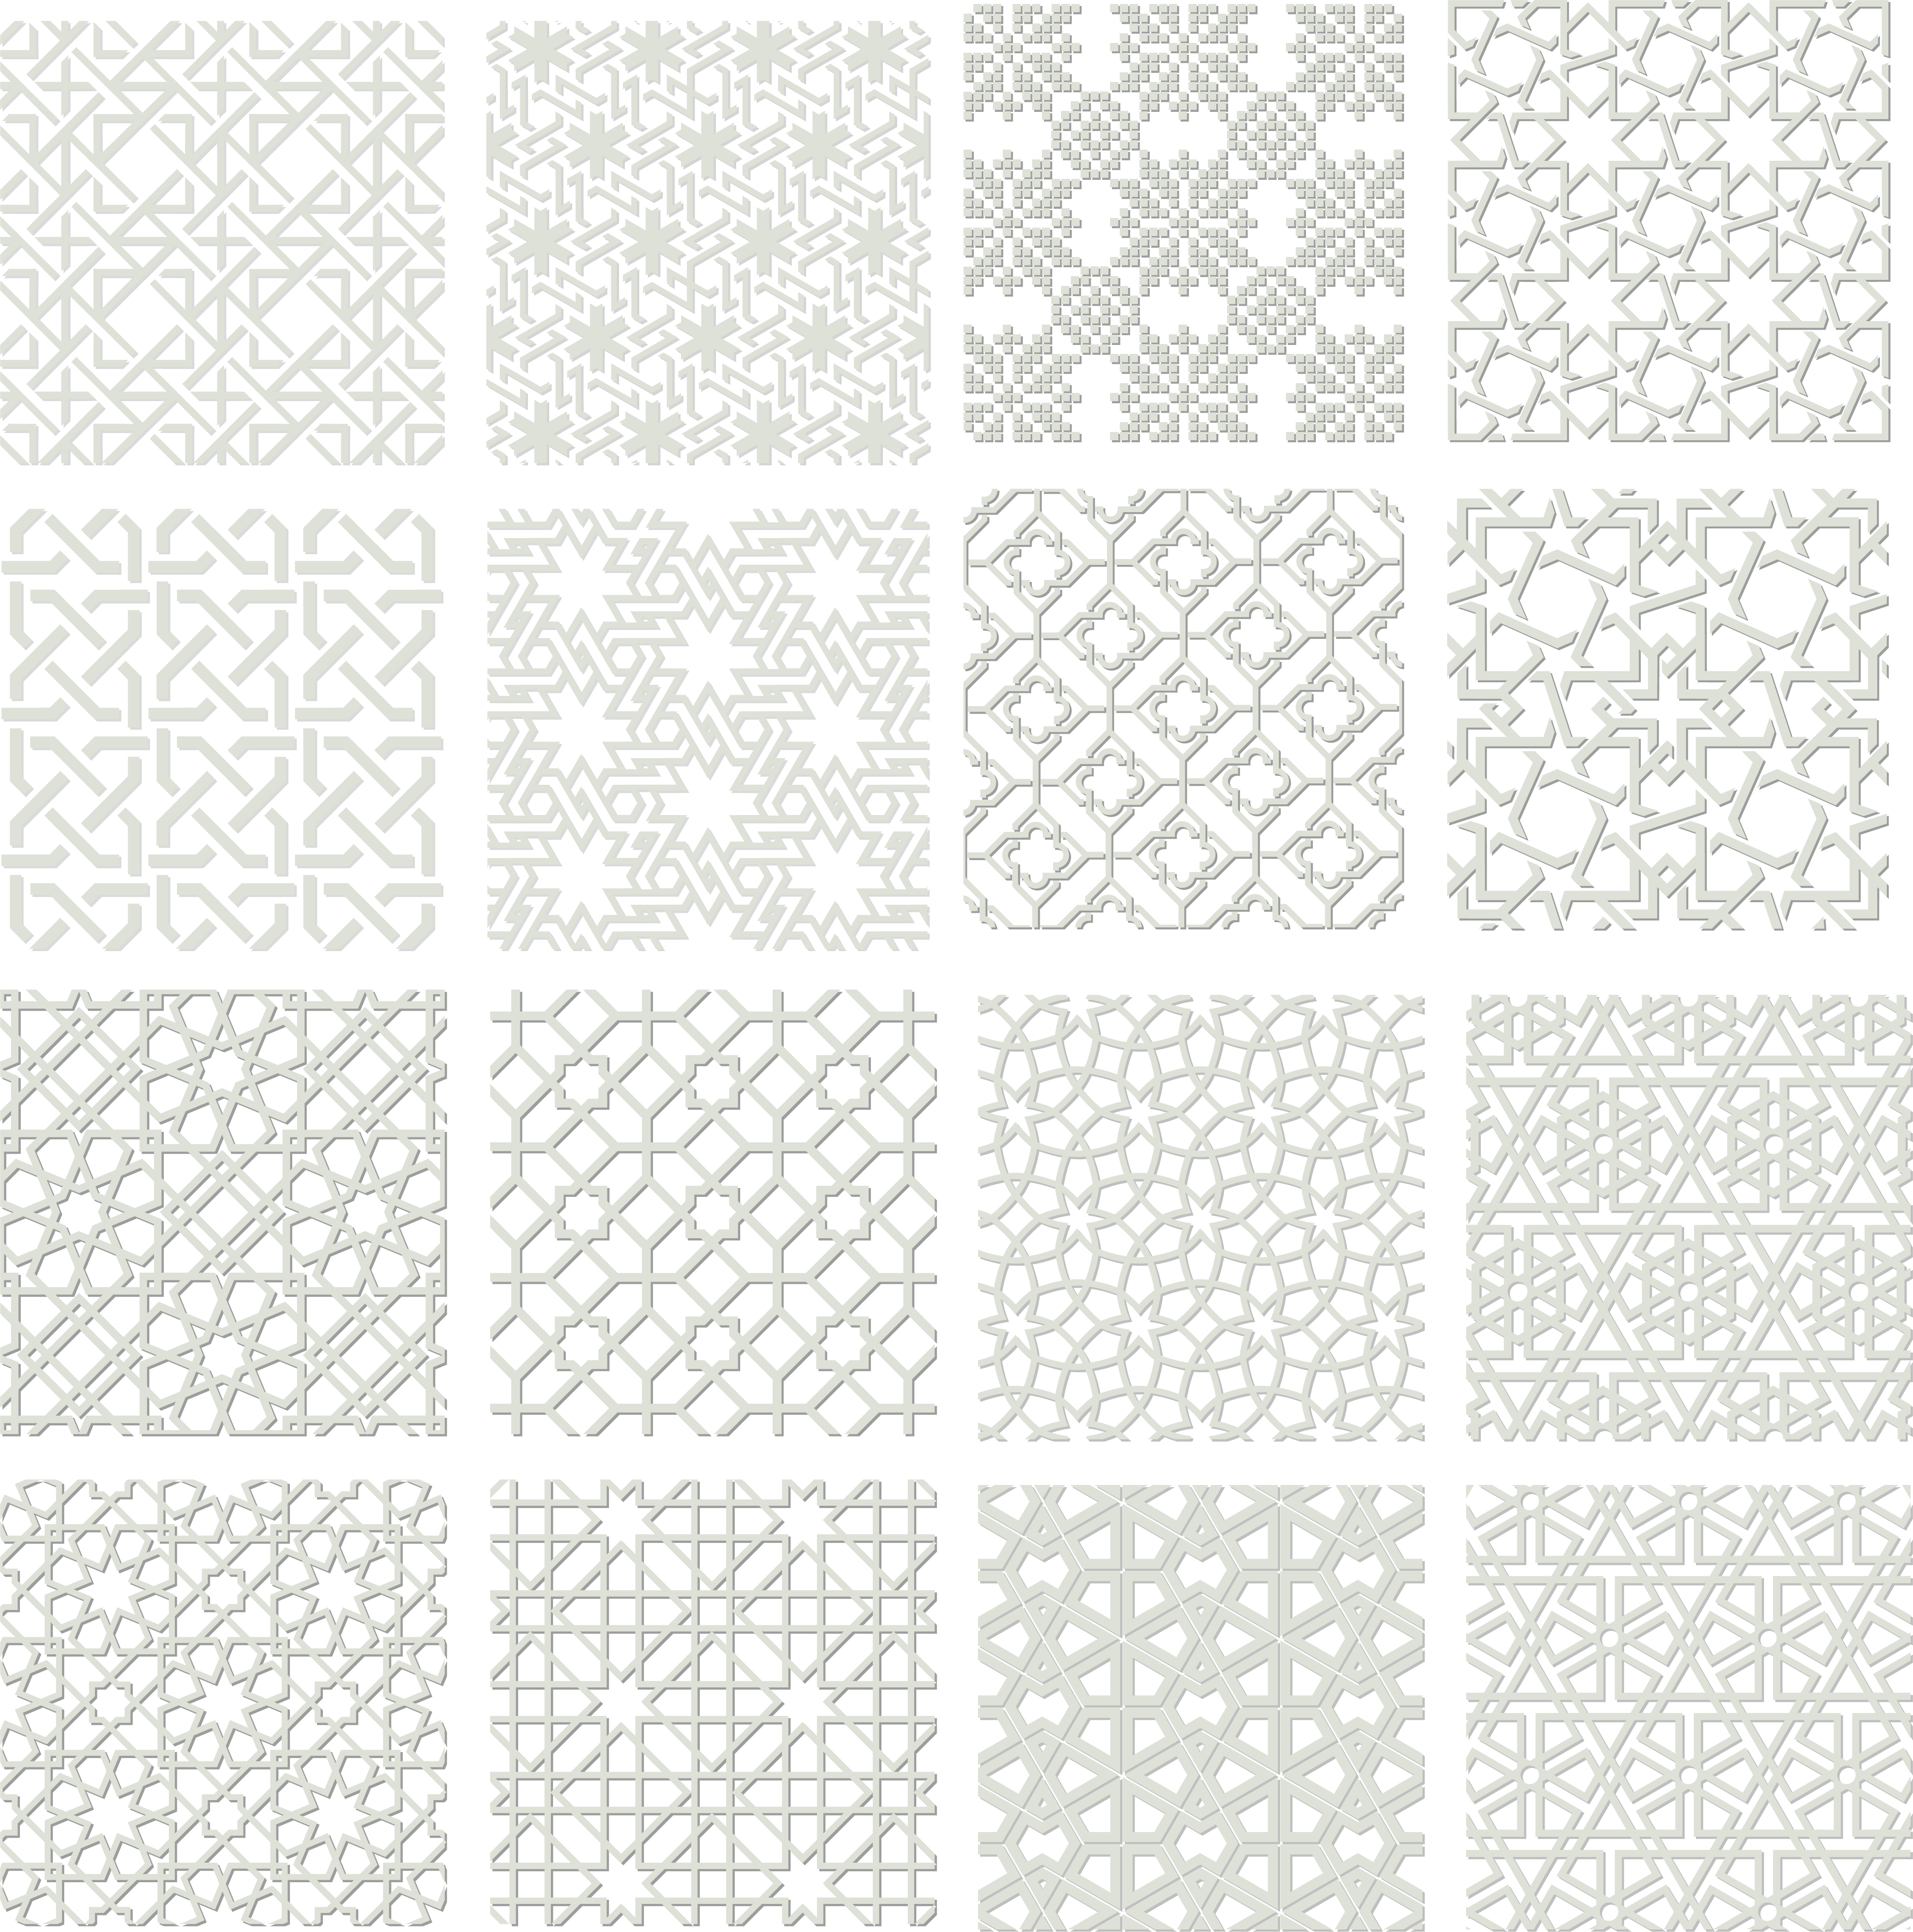 Free african vector patterns black and white png. Textile pattern classical arabic